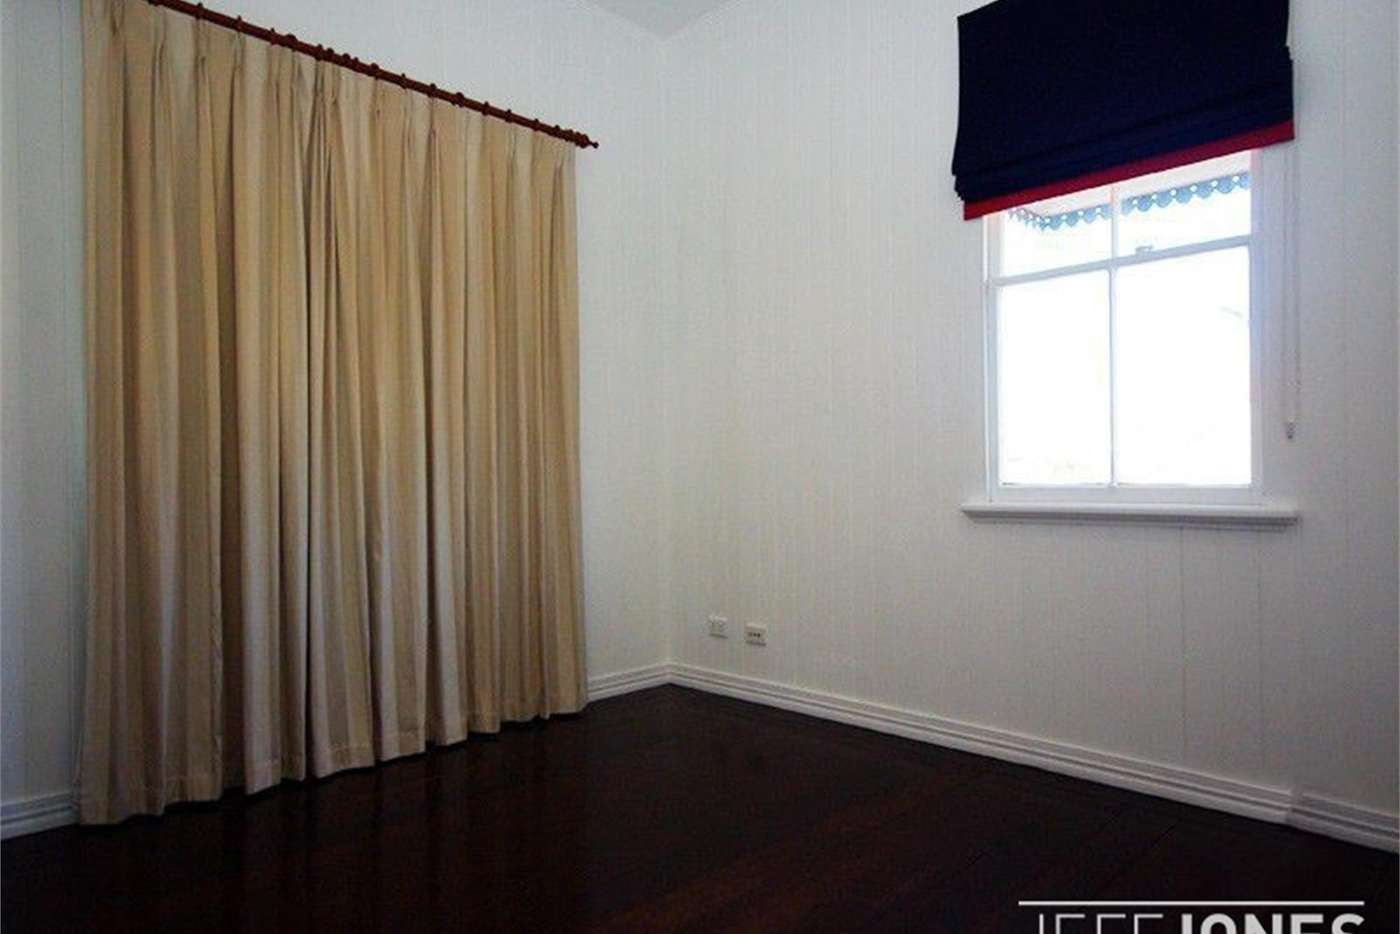 Sixth view of Homely house listing, 16 Maynard Street, Woolloongabba QLD 4102